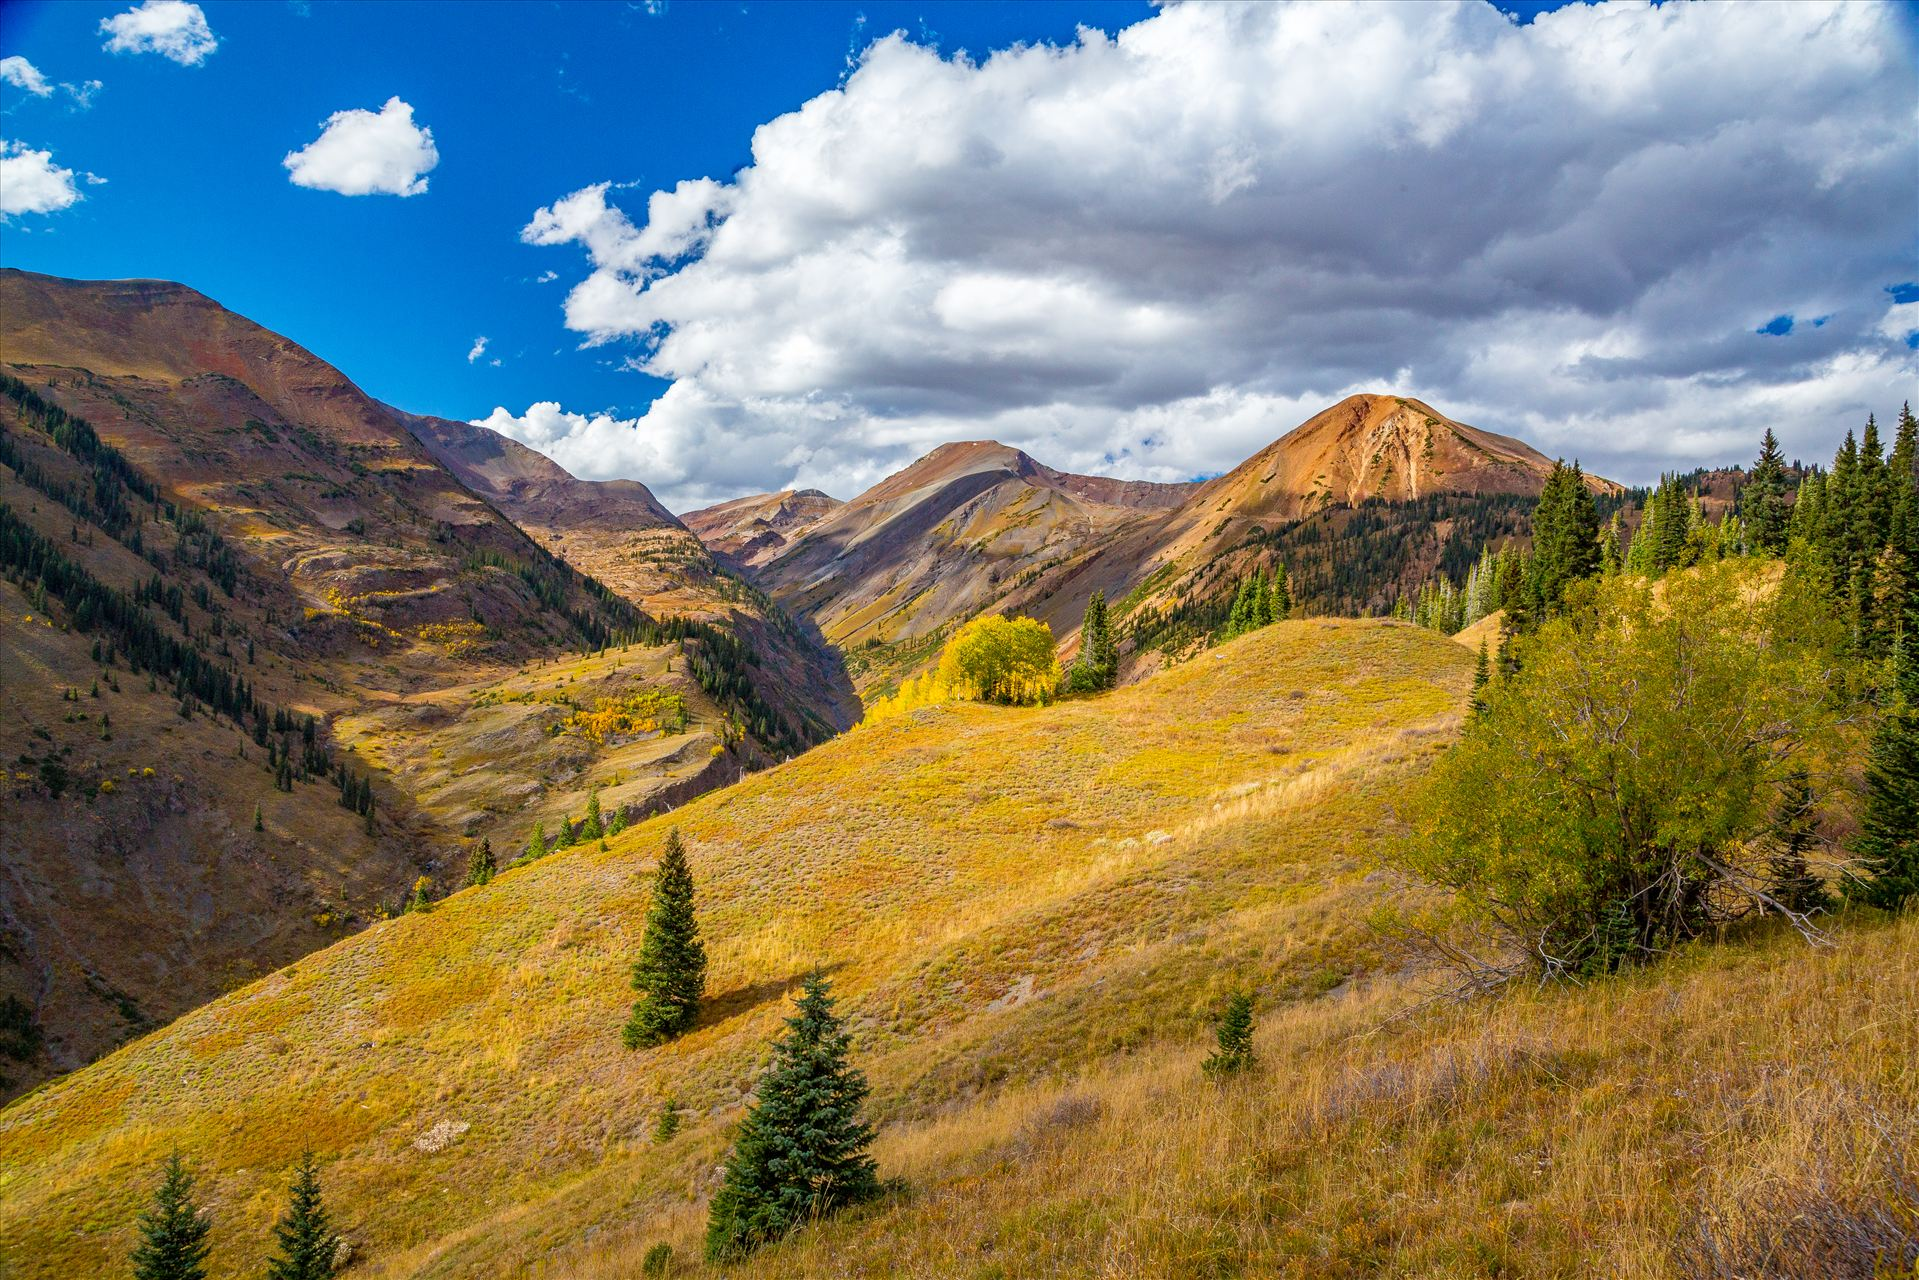 Schofield Pass Summit - View of Mount Baldy from near the summit of Schofield Pass. by D Scott Smith